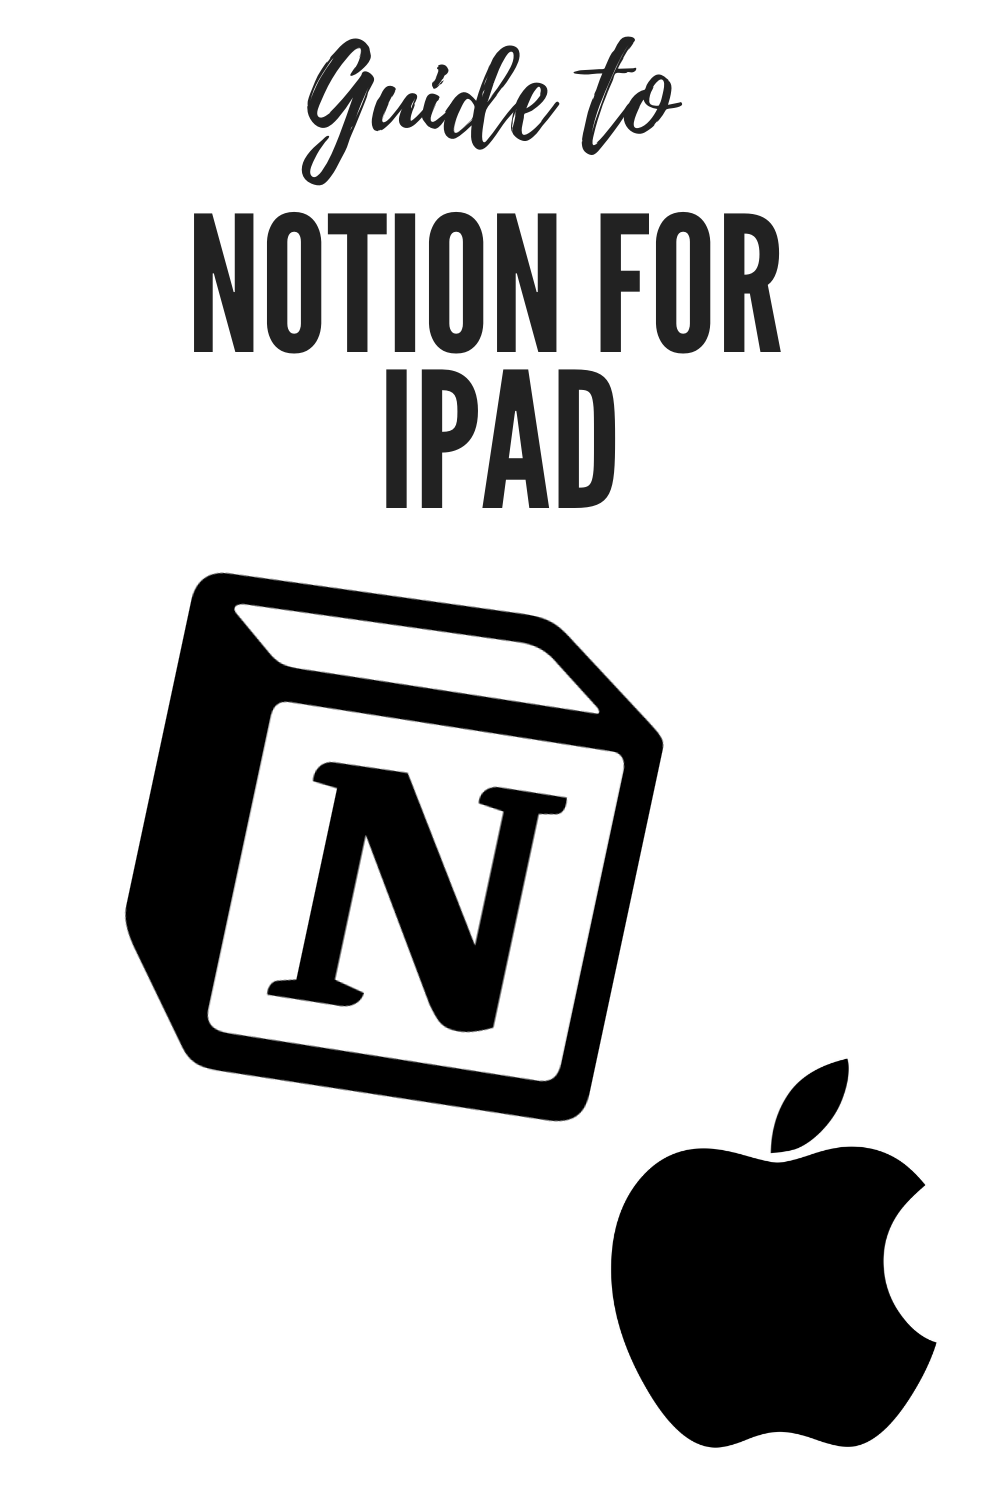 Notion for iPad